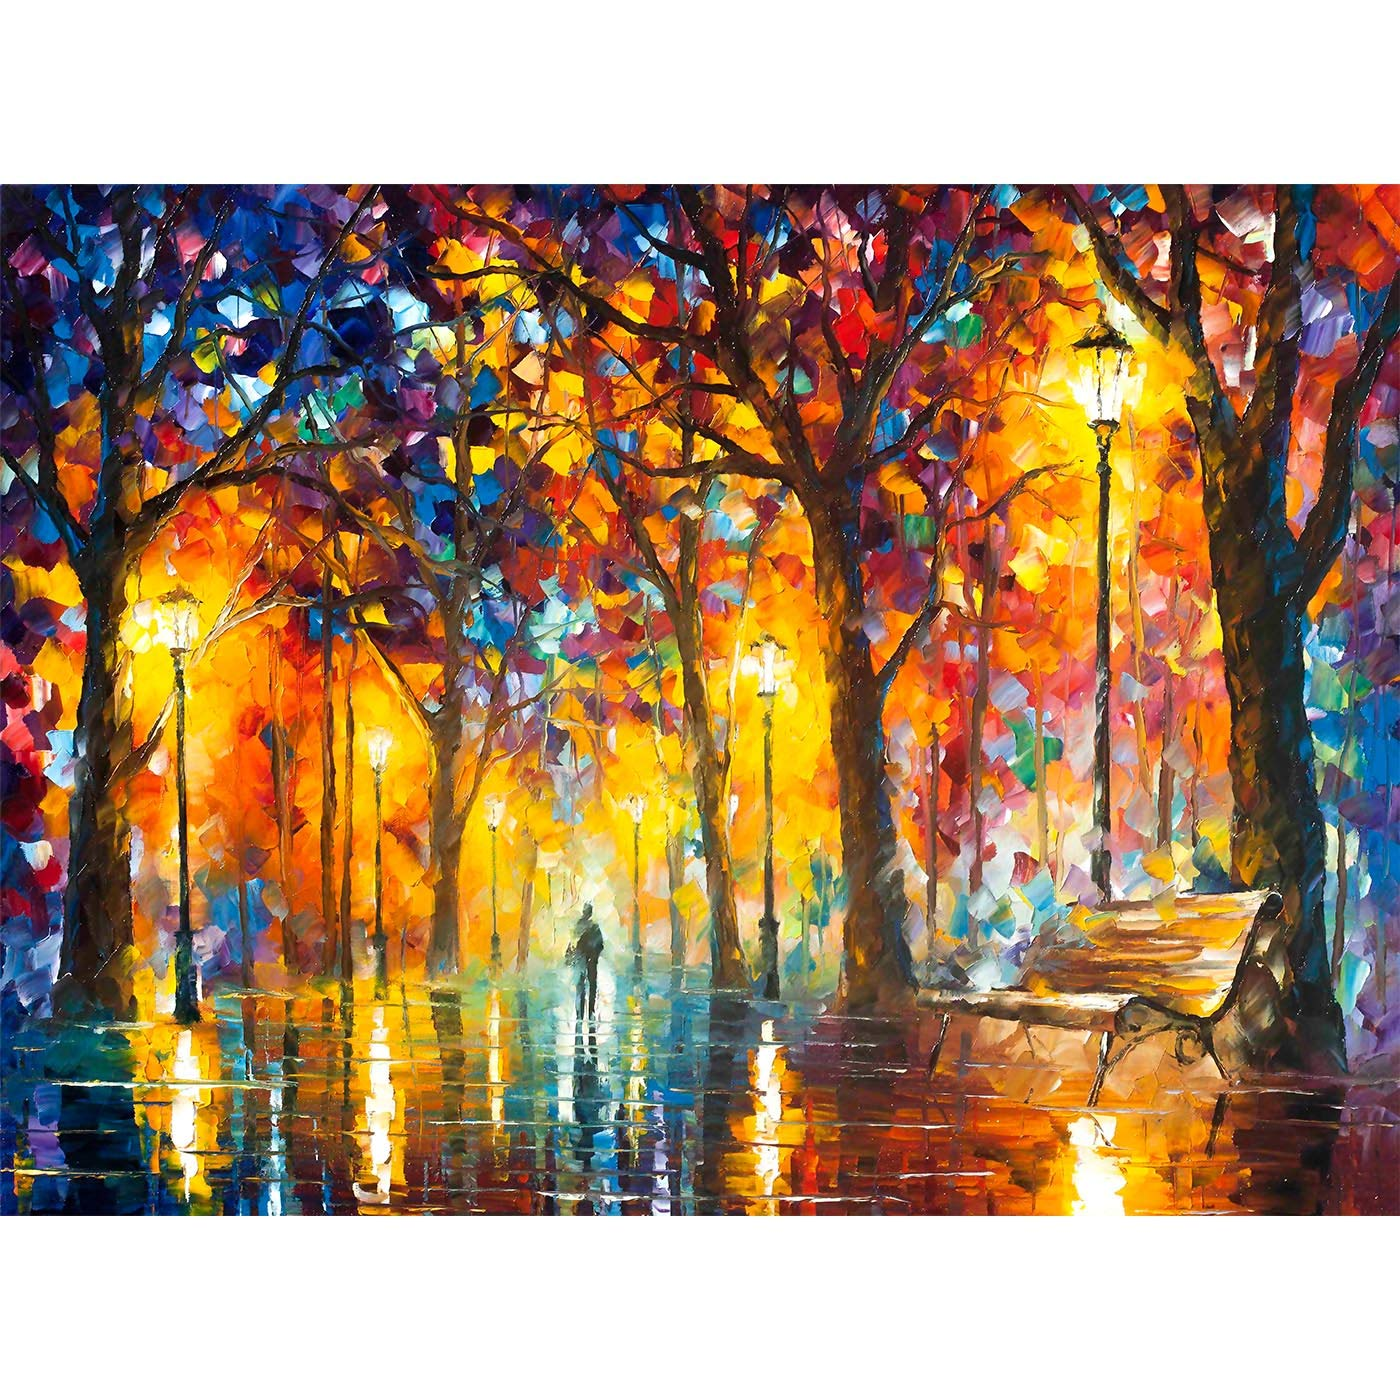 Chinese street walk Canvas wall Art prints high quality great value